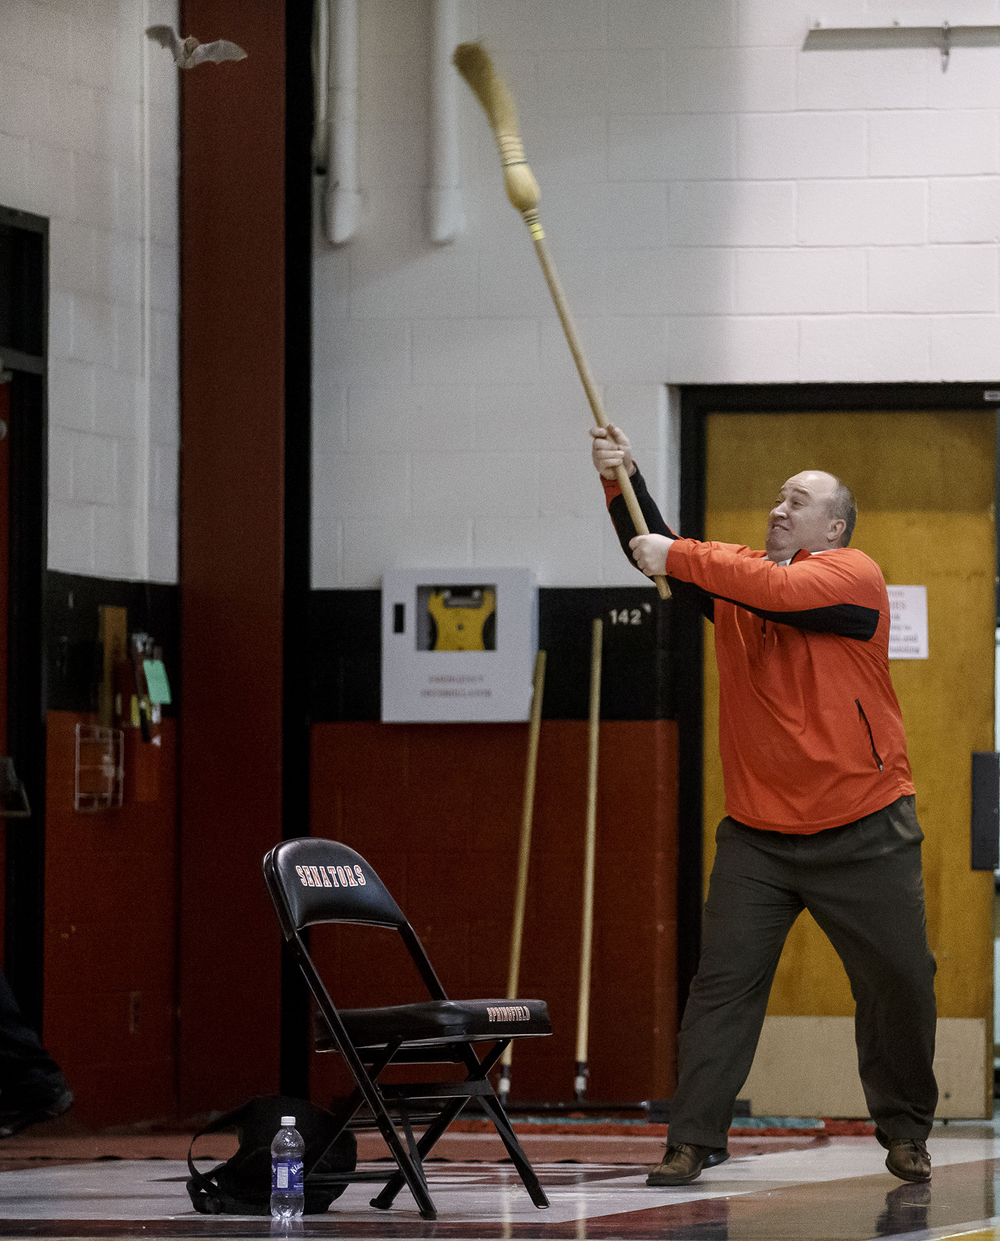 Springfield High School principle Mike Grossen uses a broom to encourage a bat to leave the gym during the Girls Class 3A Springfield Regional semifinal at Springfield High School, Wednesday, Feb. 19, 2014. Justin L. Fowler/The State Journal-Register